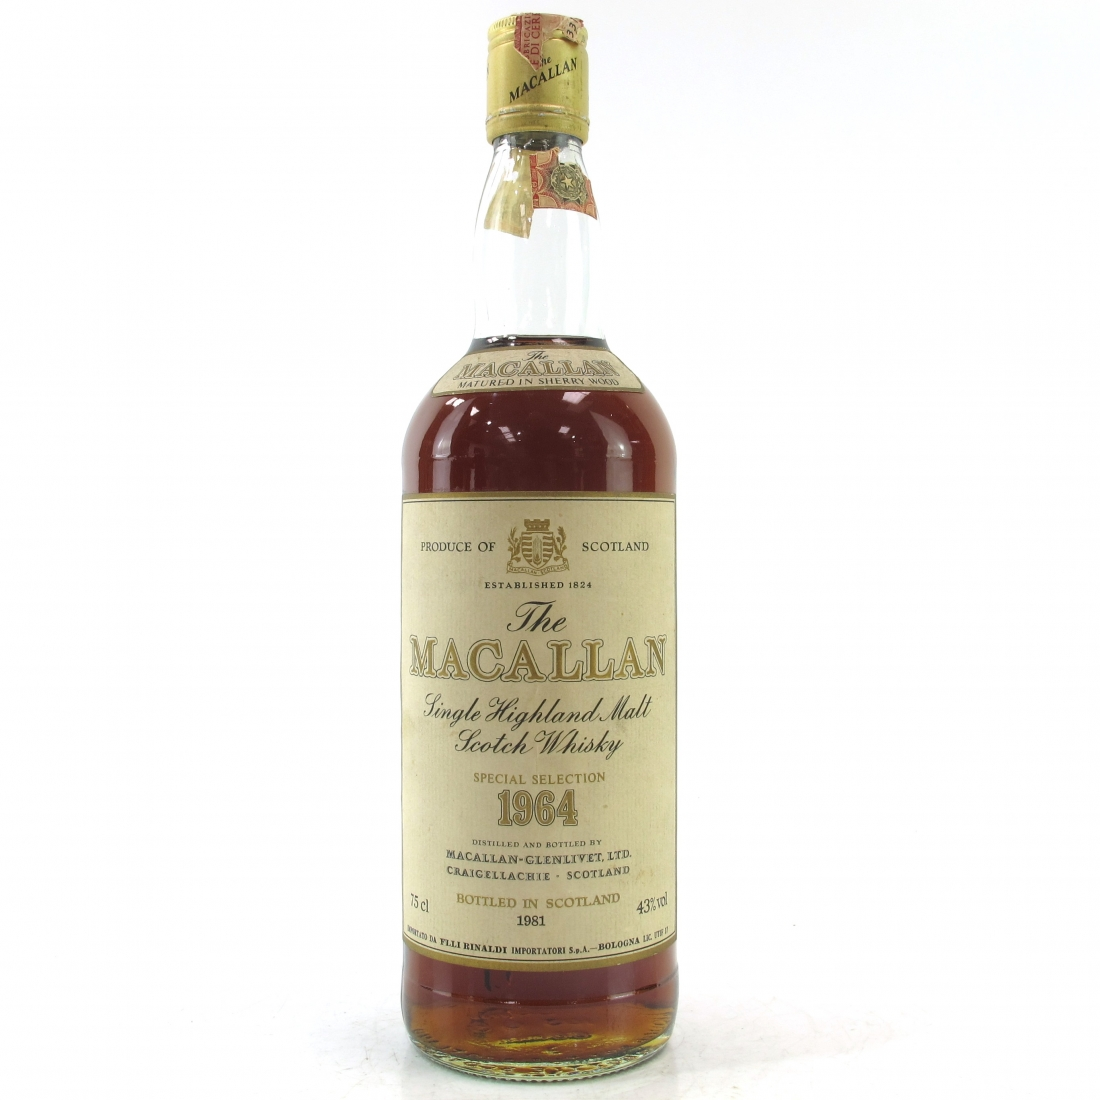 Macallan 1964 / Rinaldi Import